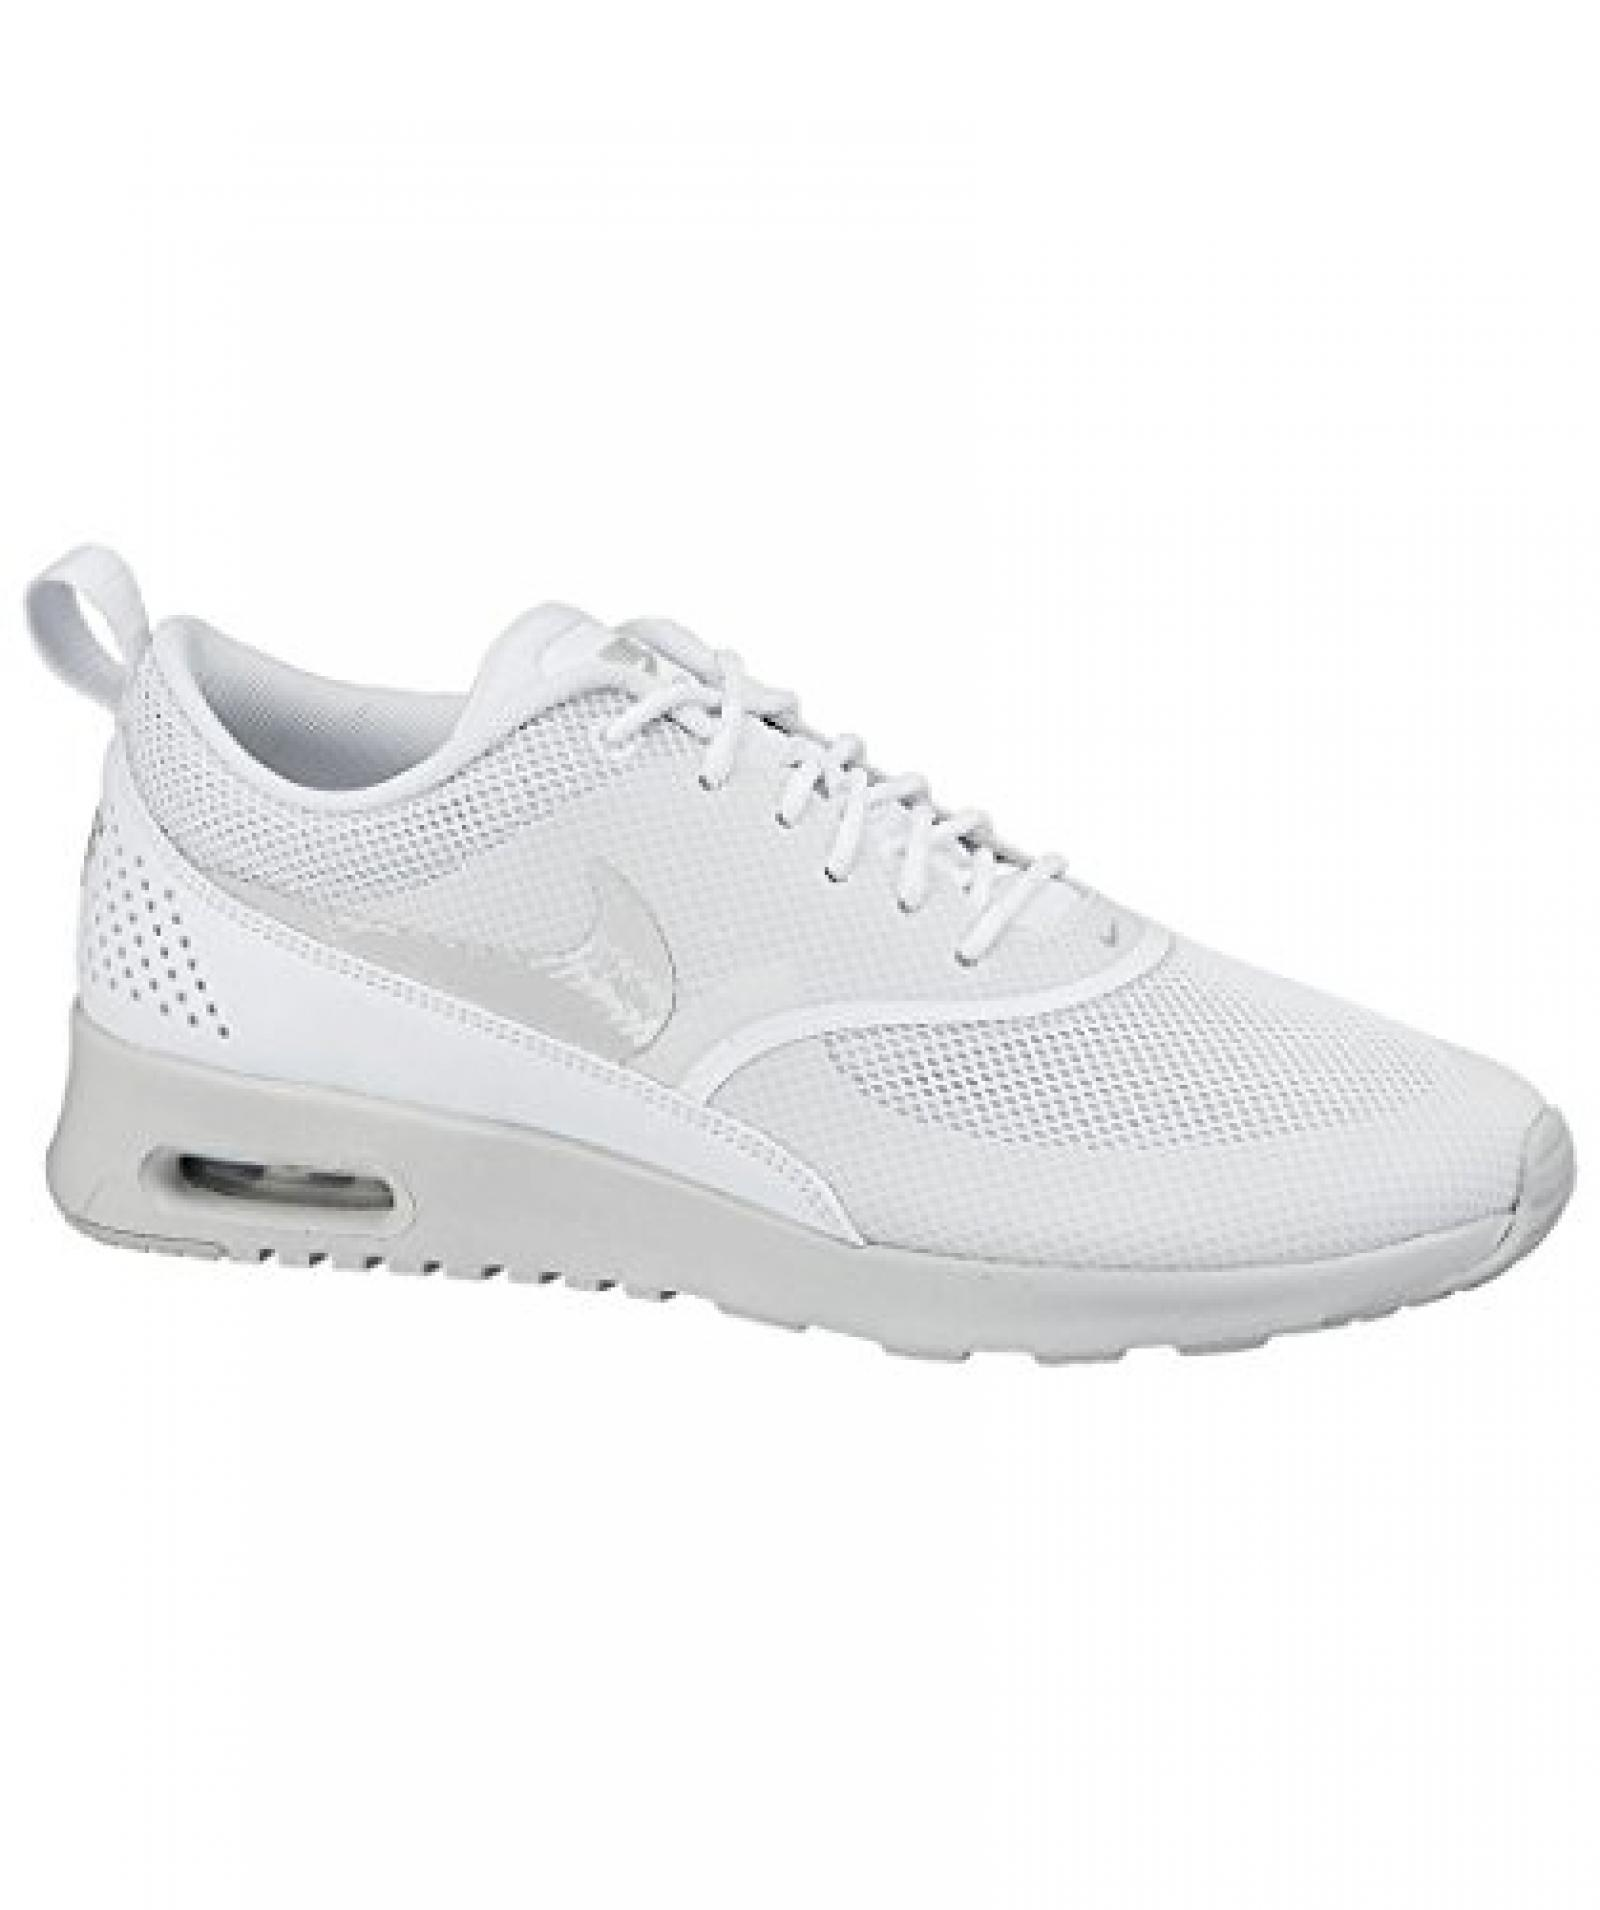 Nike Air Max Thea Damen Sneakers